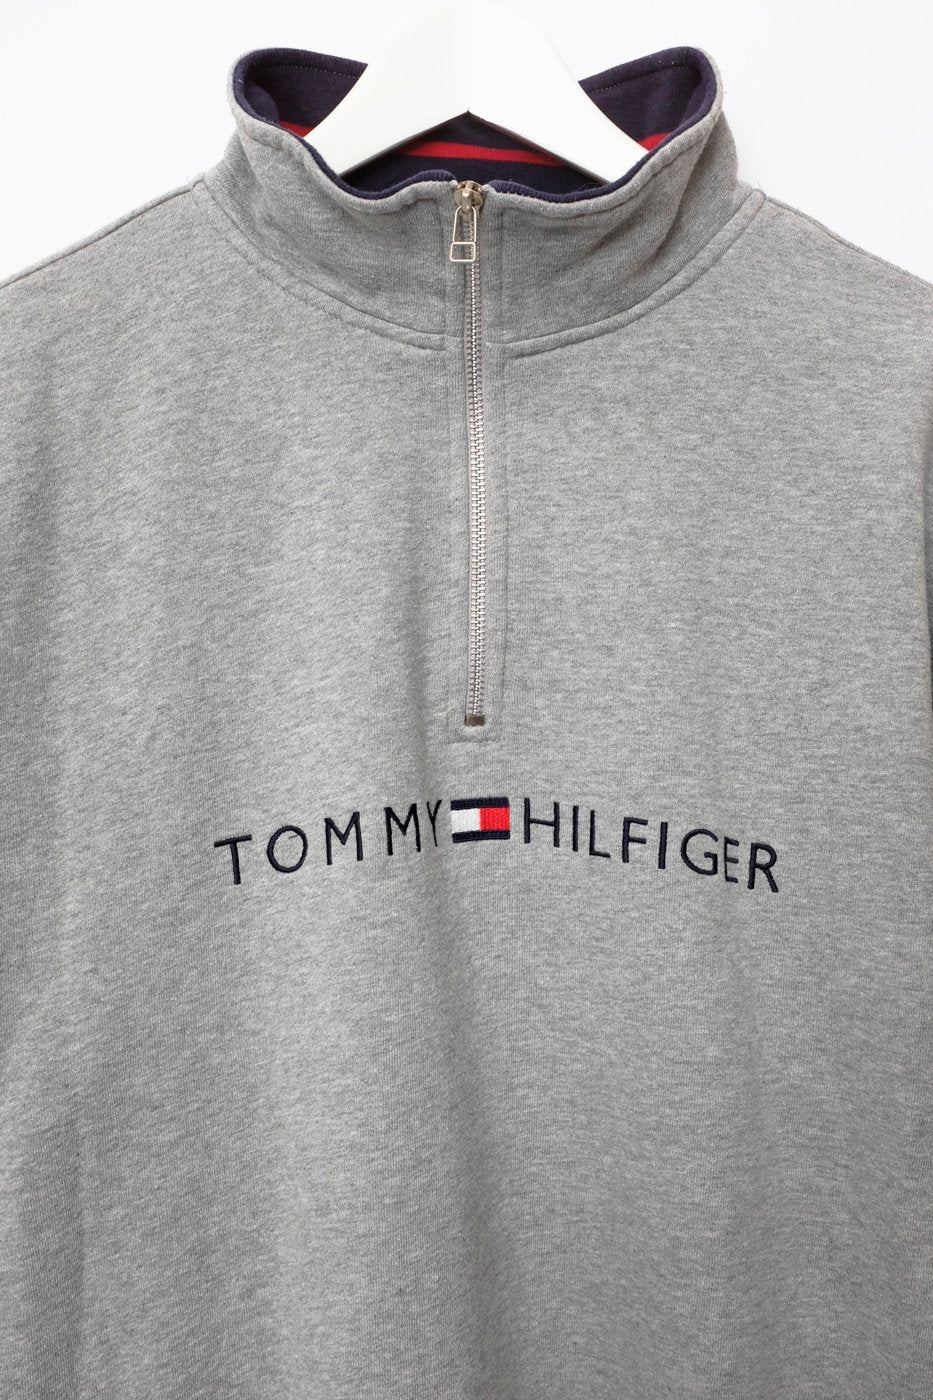 0527_TOMMY HILFIGER VTG SWEATER